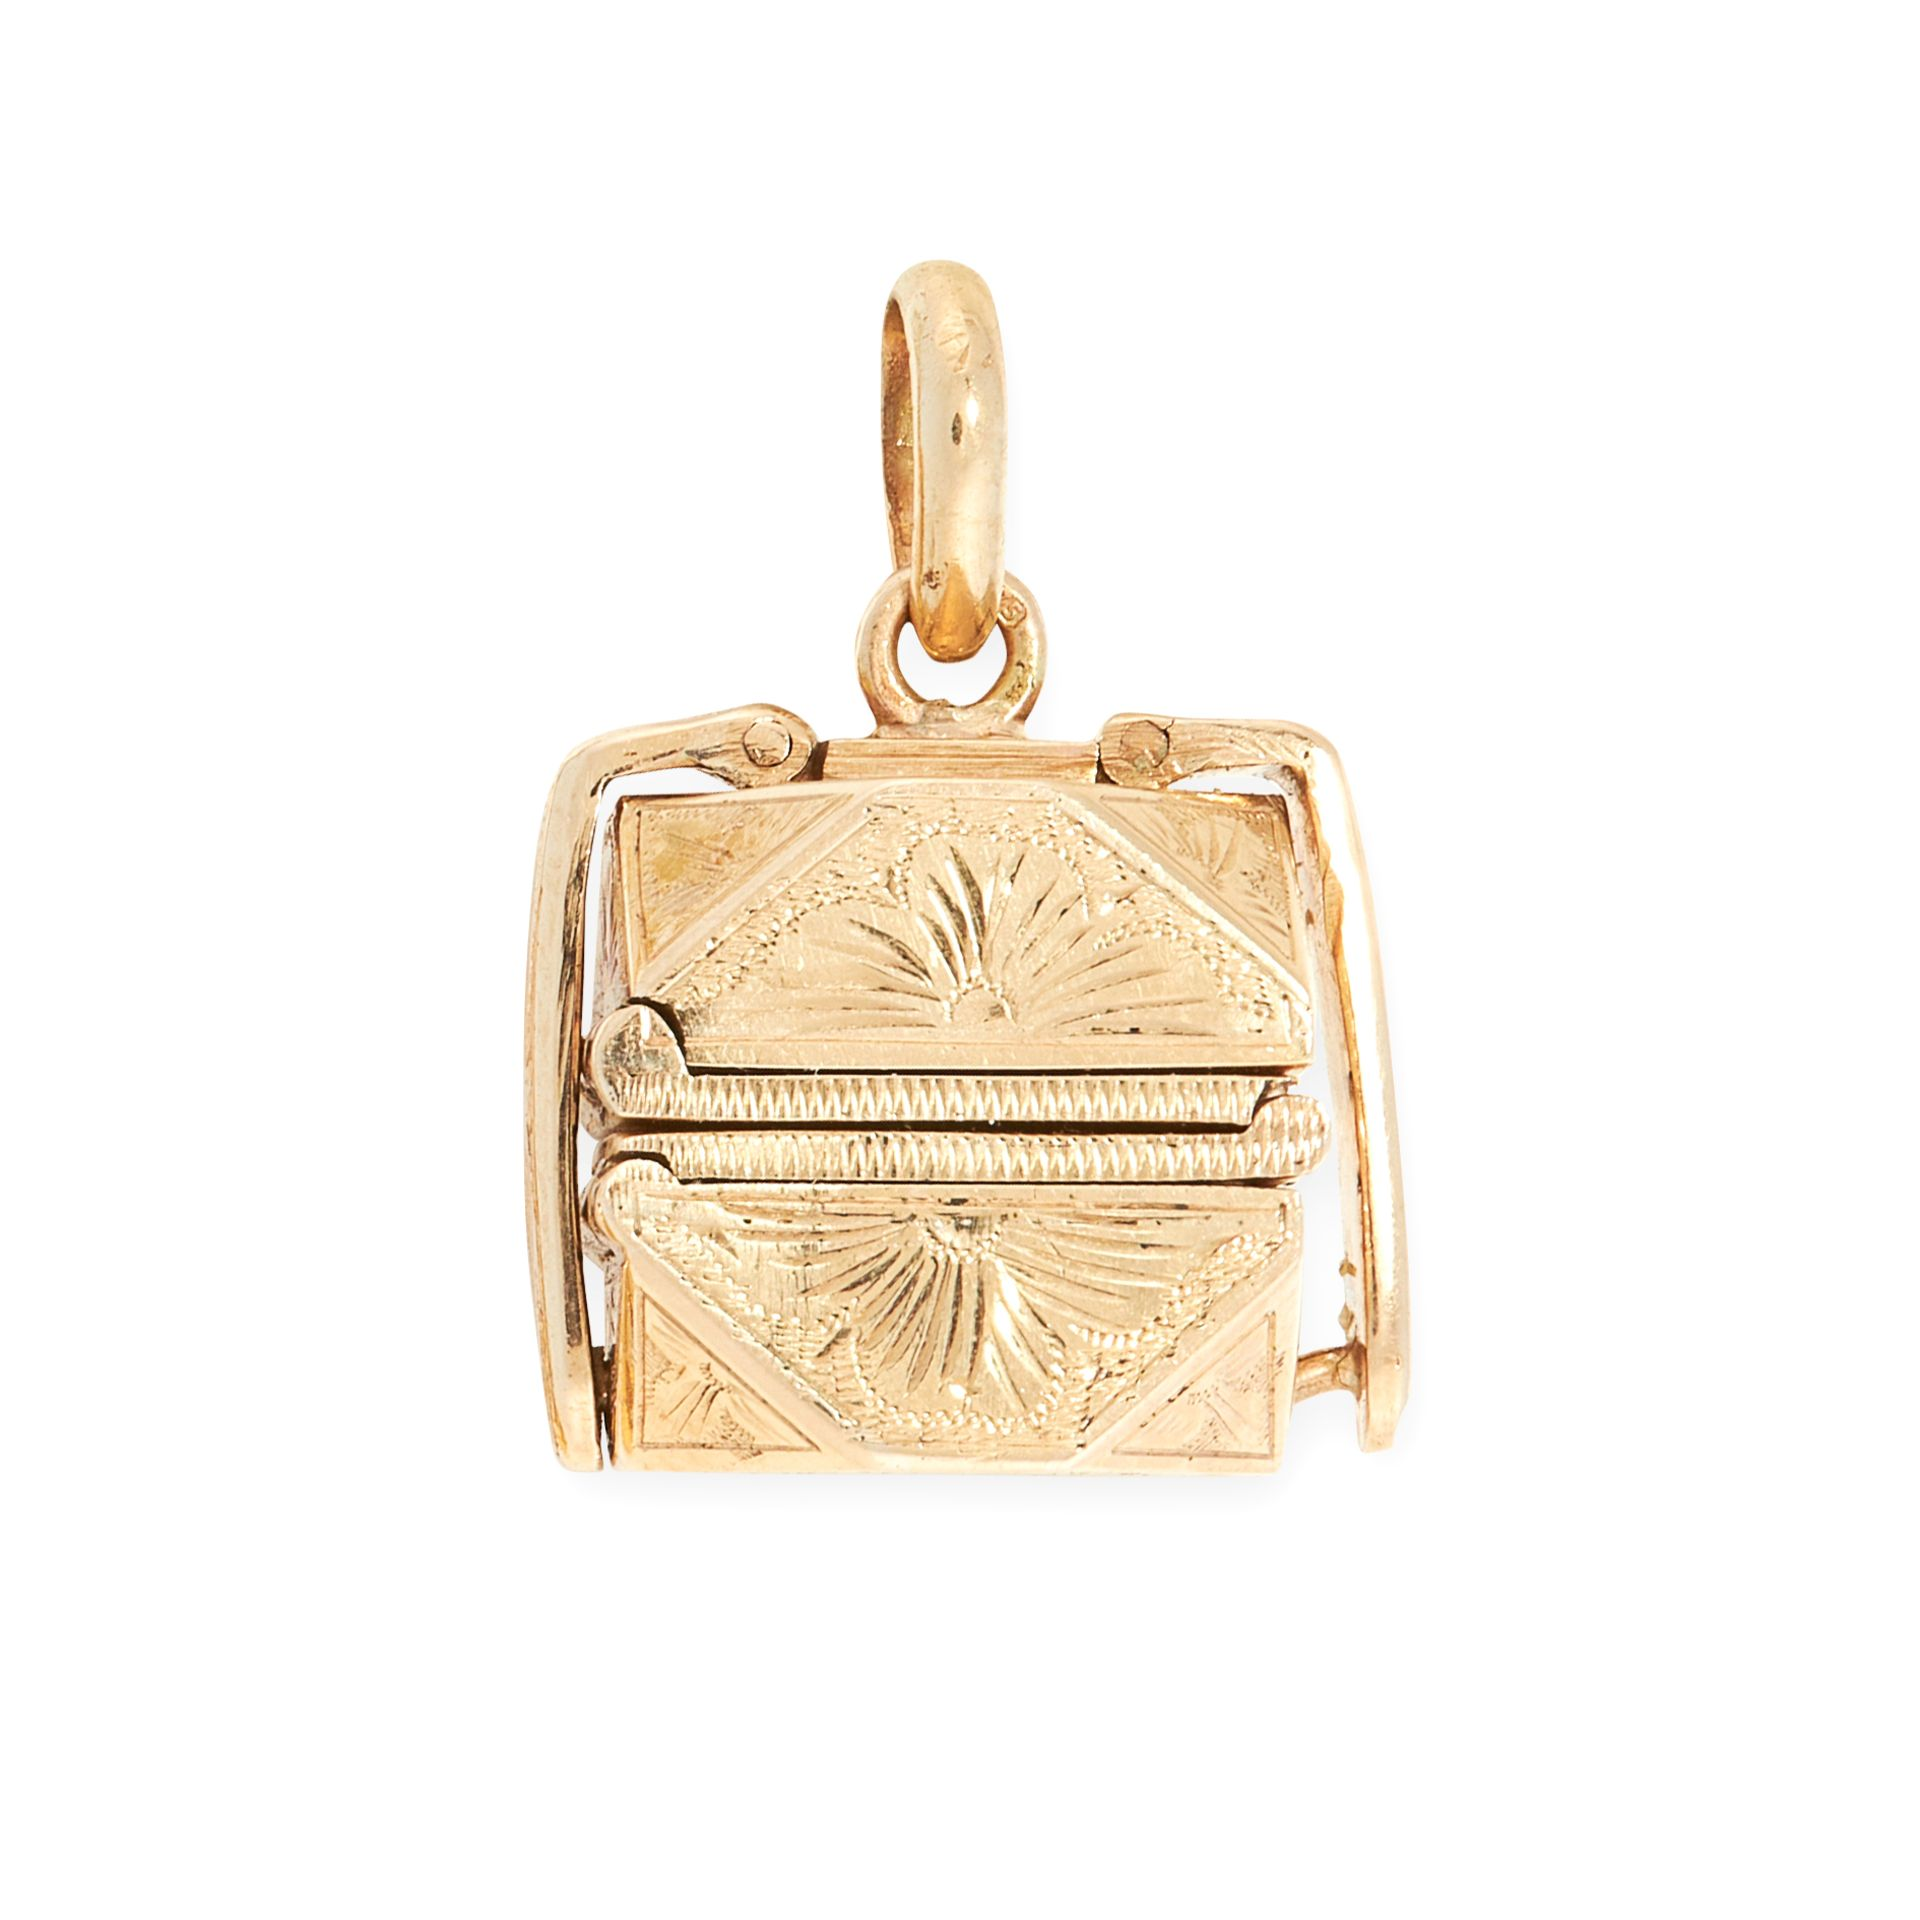 AN ANTIQUE PUZZLE BALL MOURNING LOCKET in yellow gold, the cut cornered square body with engraved